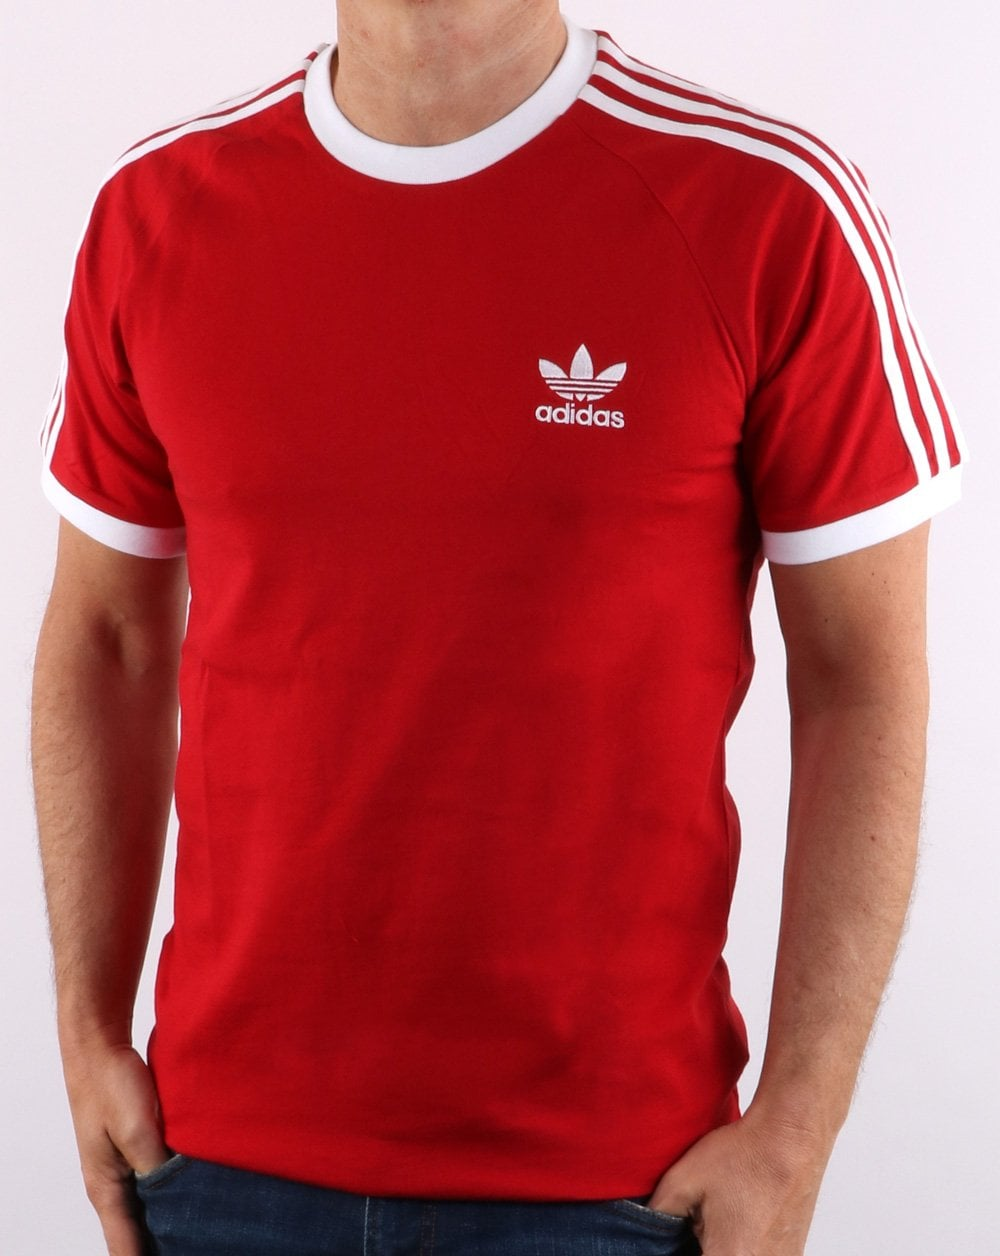 Adidas Originals Retro 3 Stripes T Shirt Red